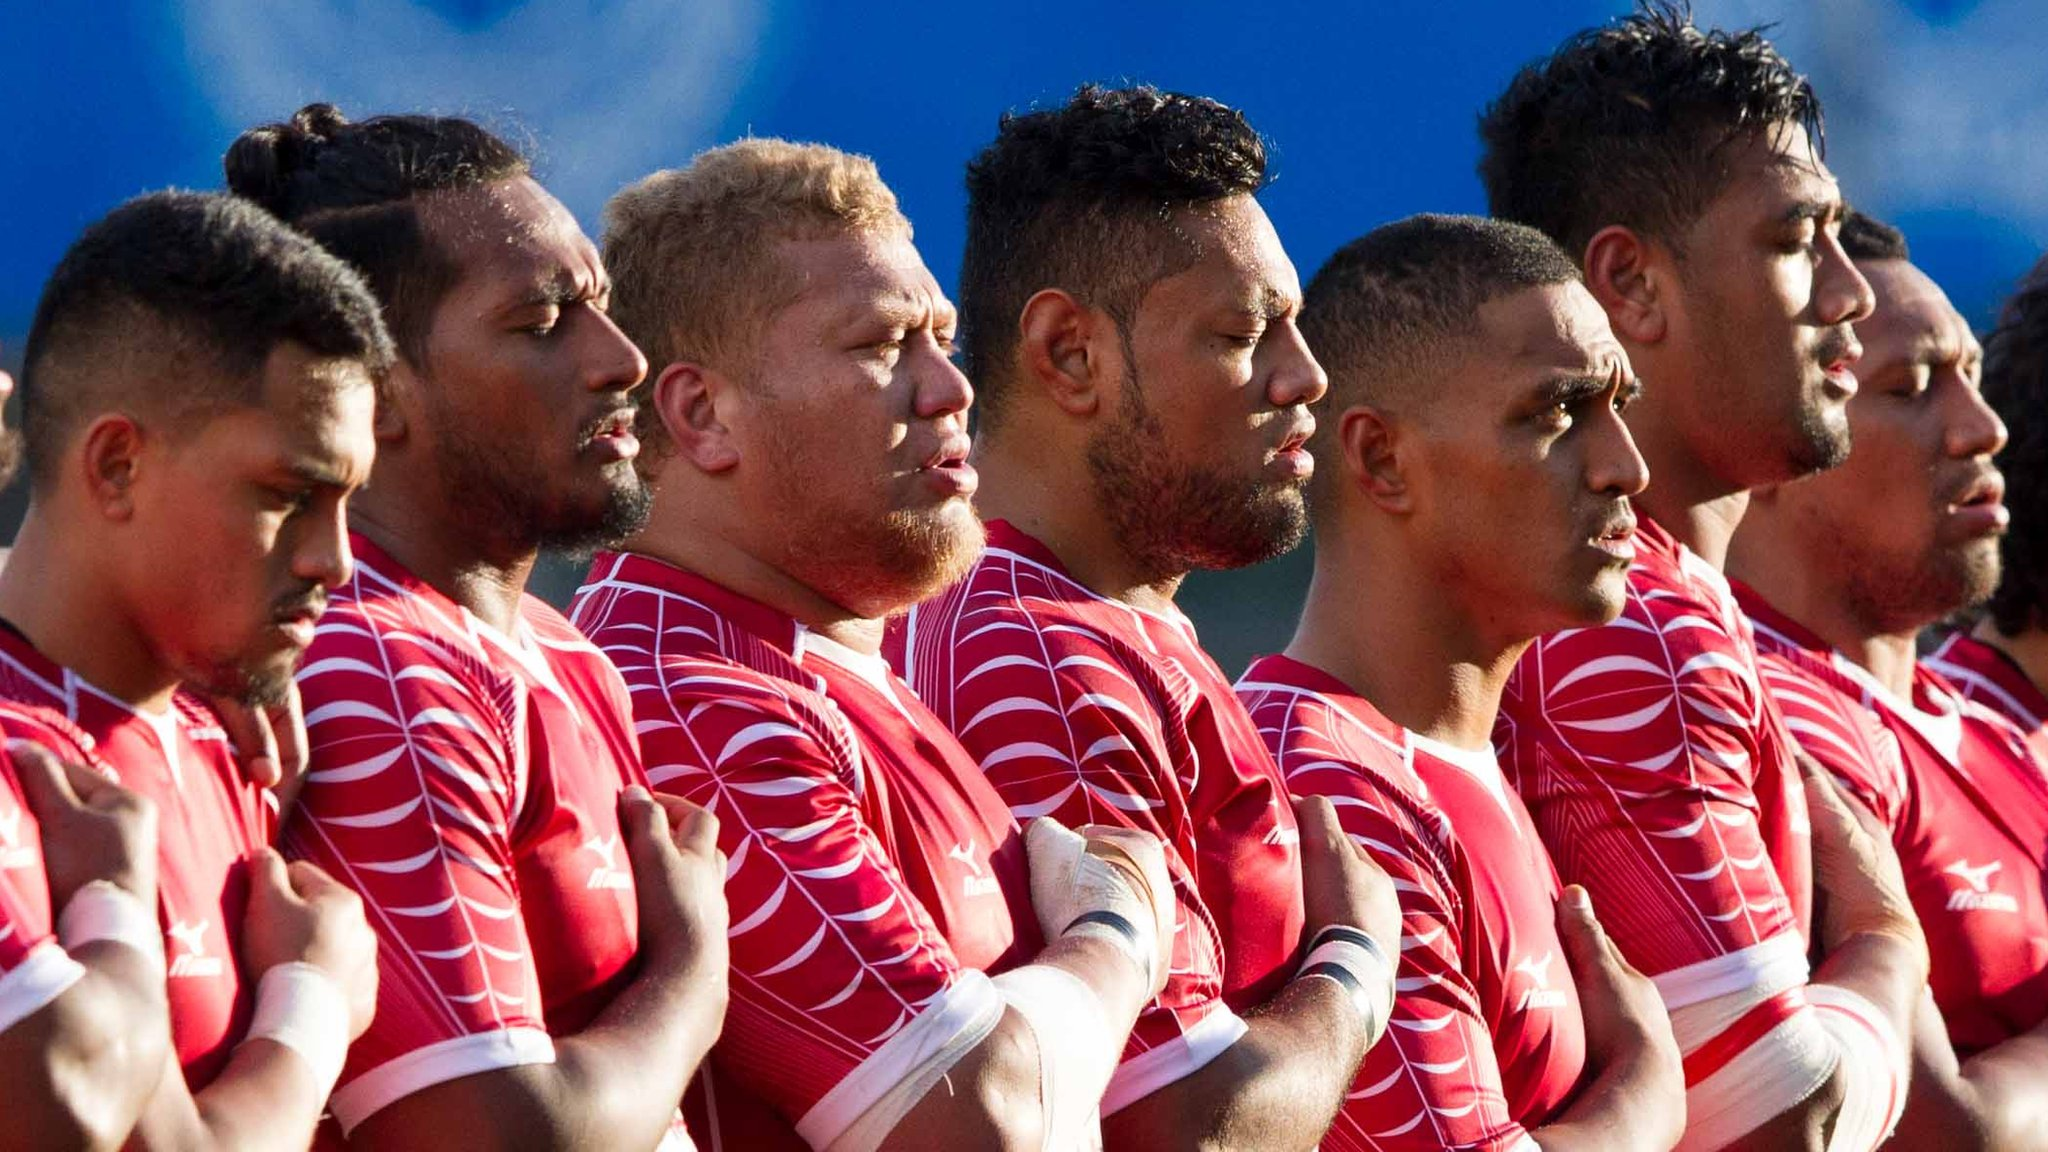 Auckland to host Tonga v Wales Test in June